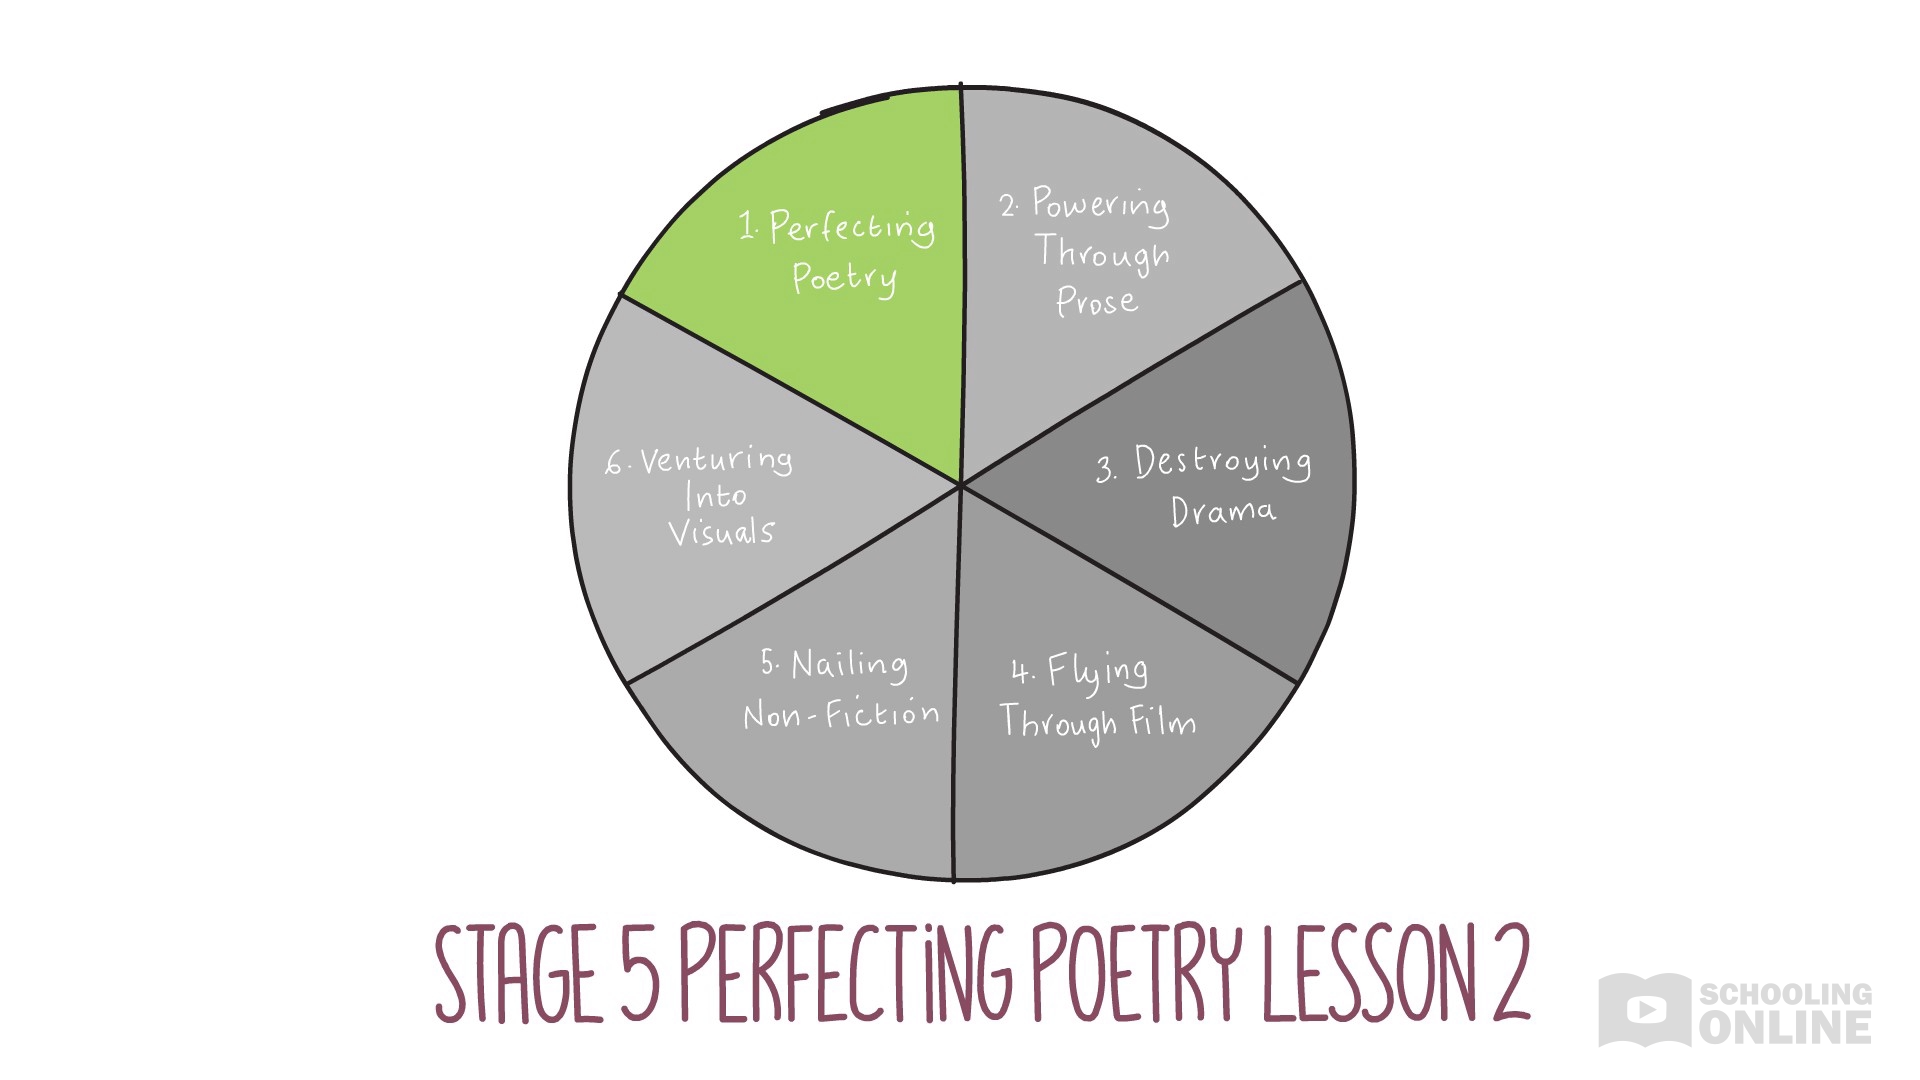 English Essentials Stage 5 - Perfecting Poetry Lesson 2